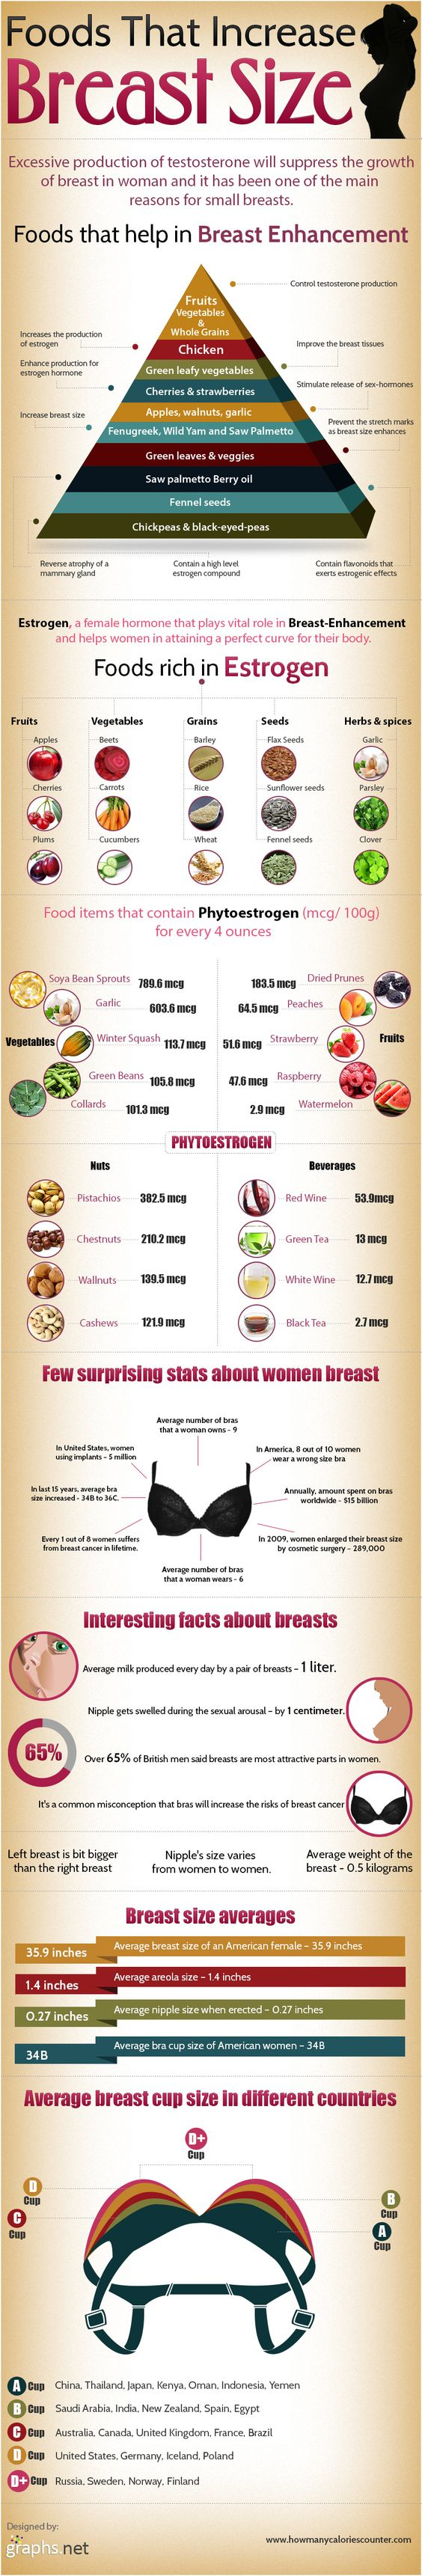 foods-for-breast-enhancement